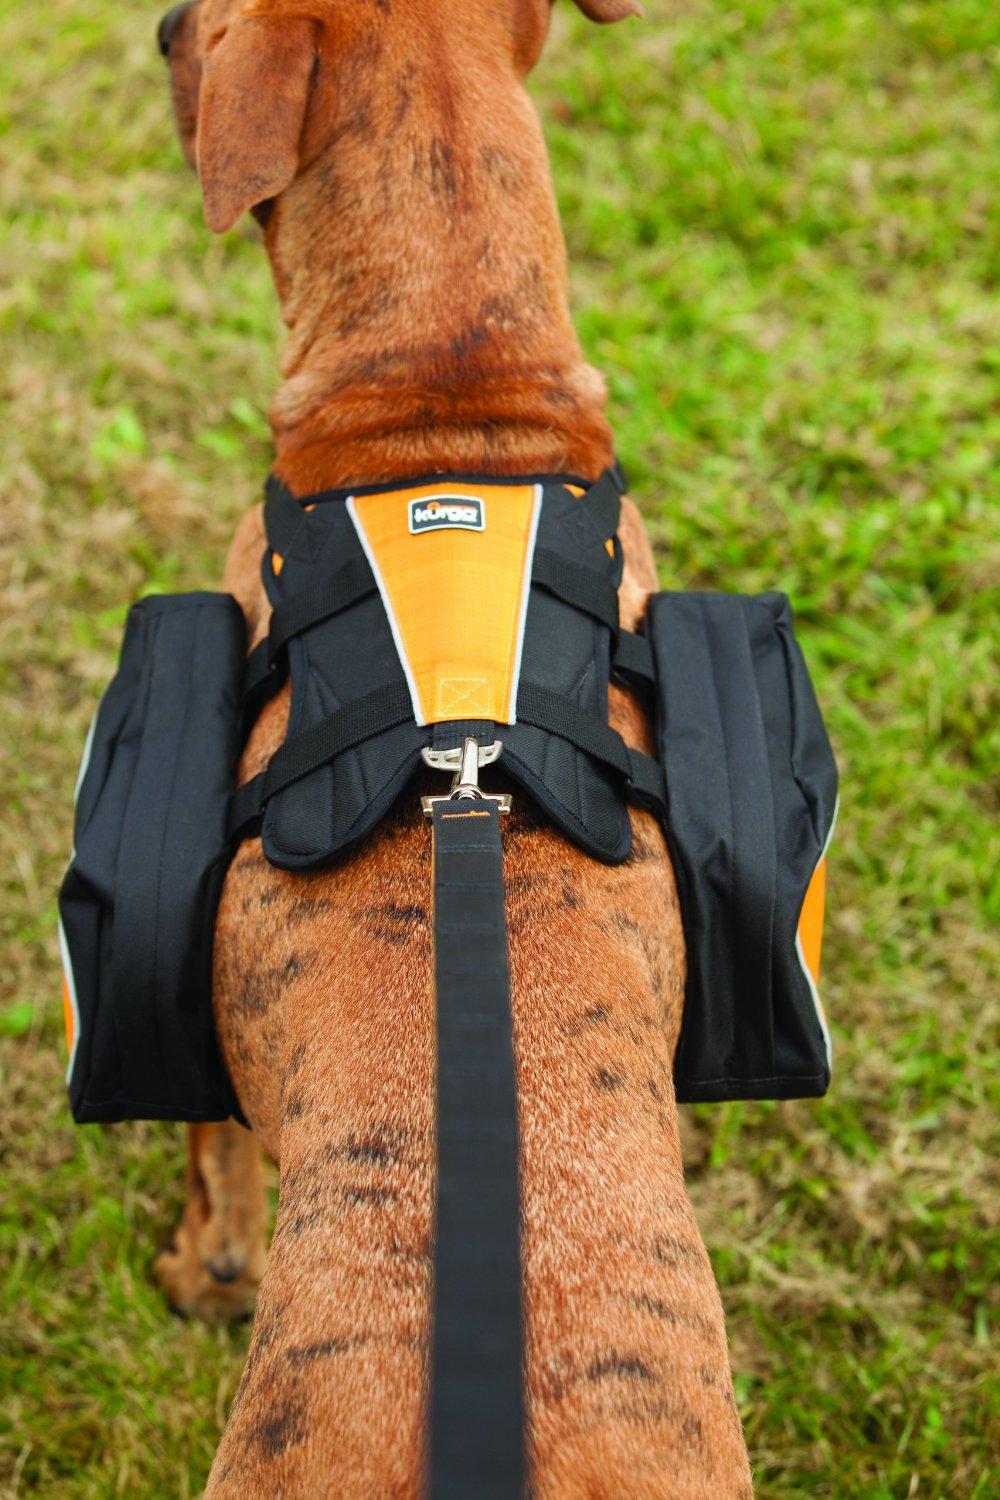 Best Dog Harness Huge Review Of 10 Pet Harnesses For Dogs